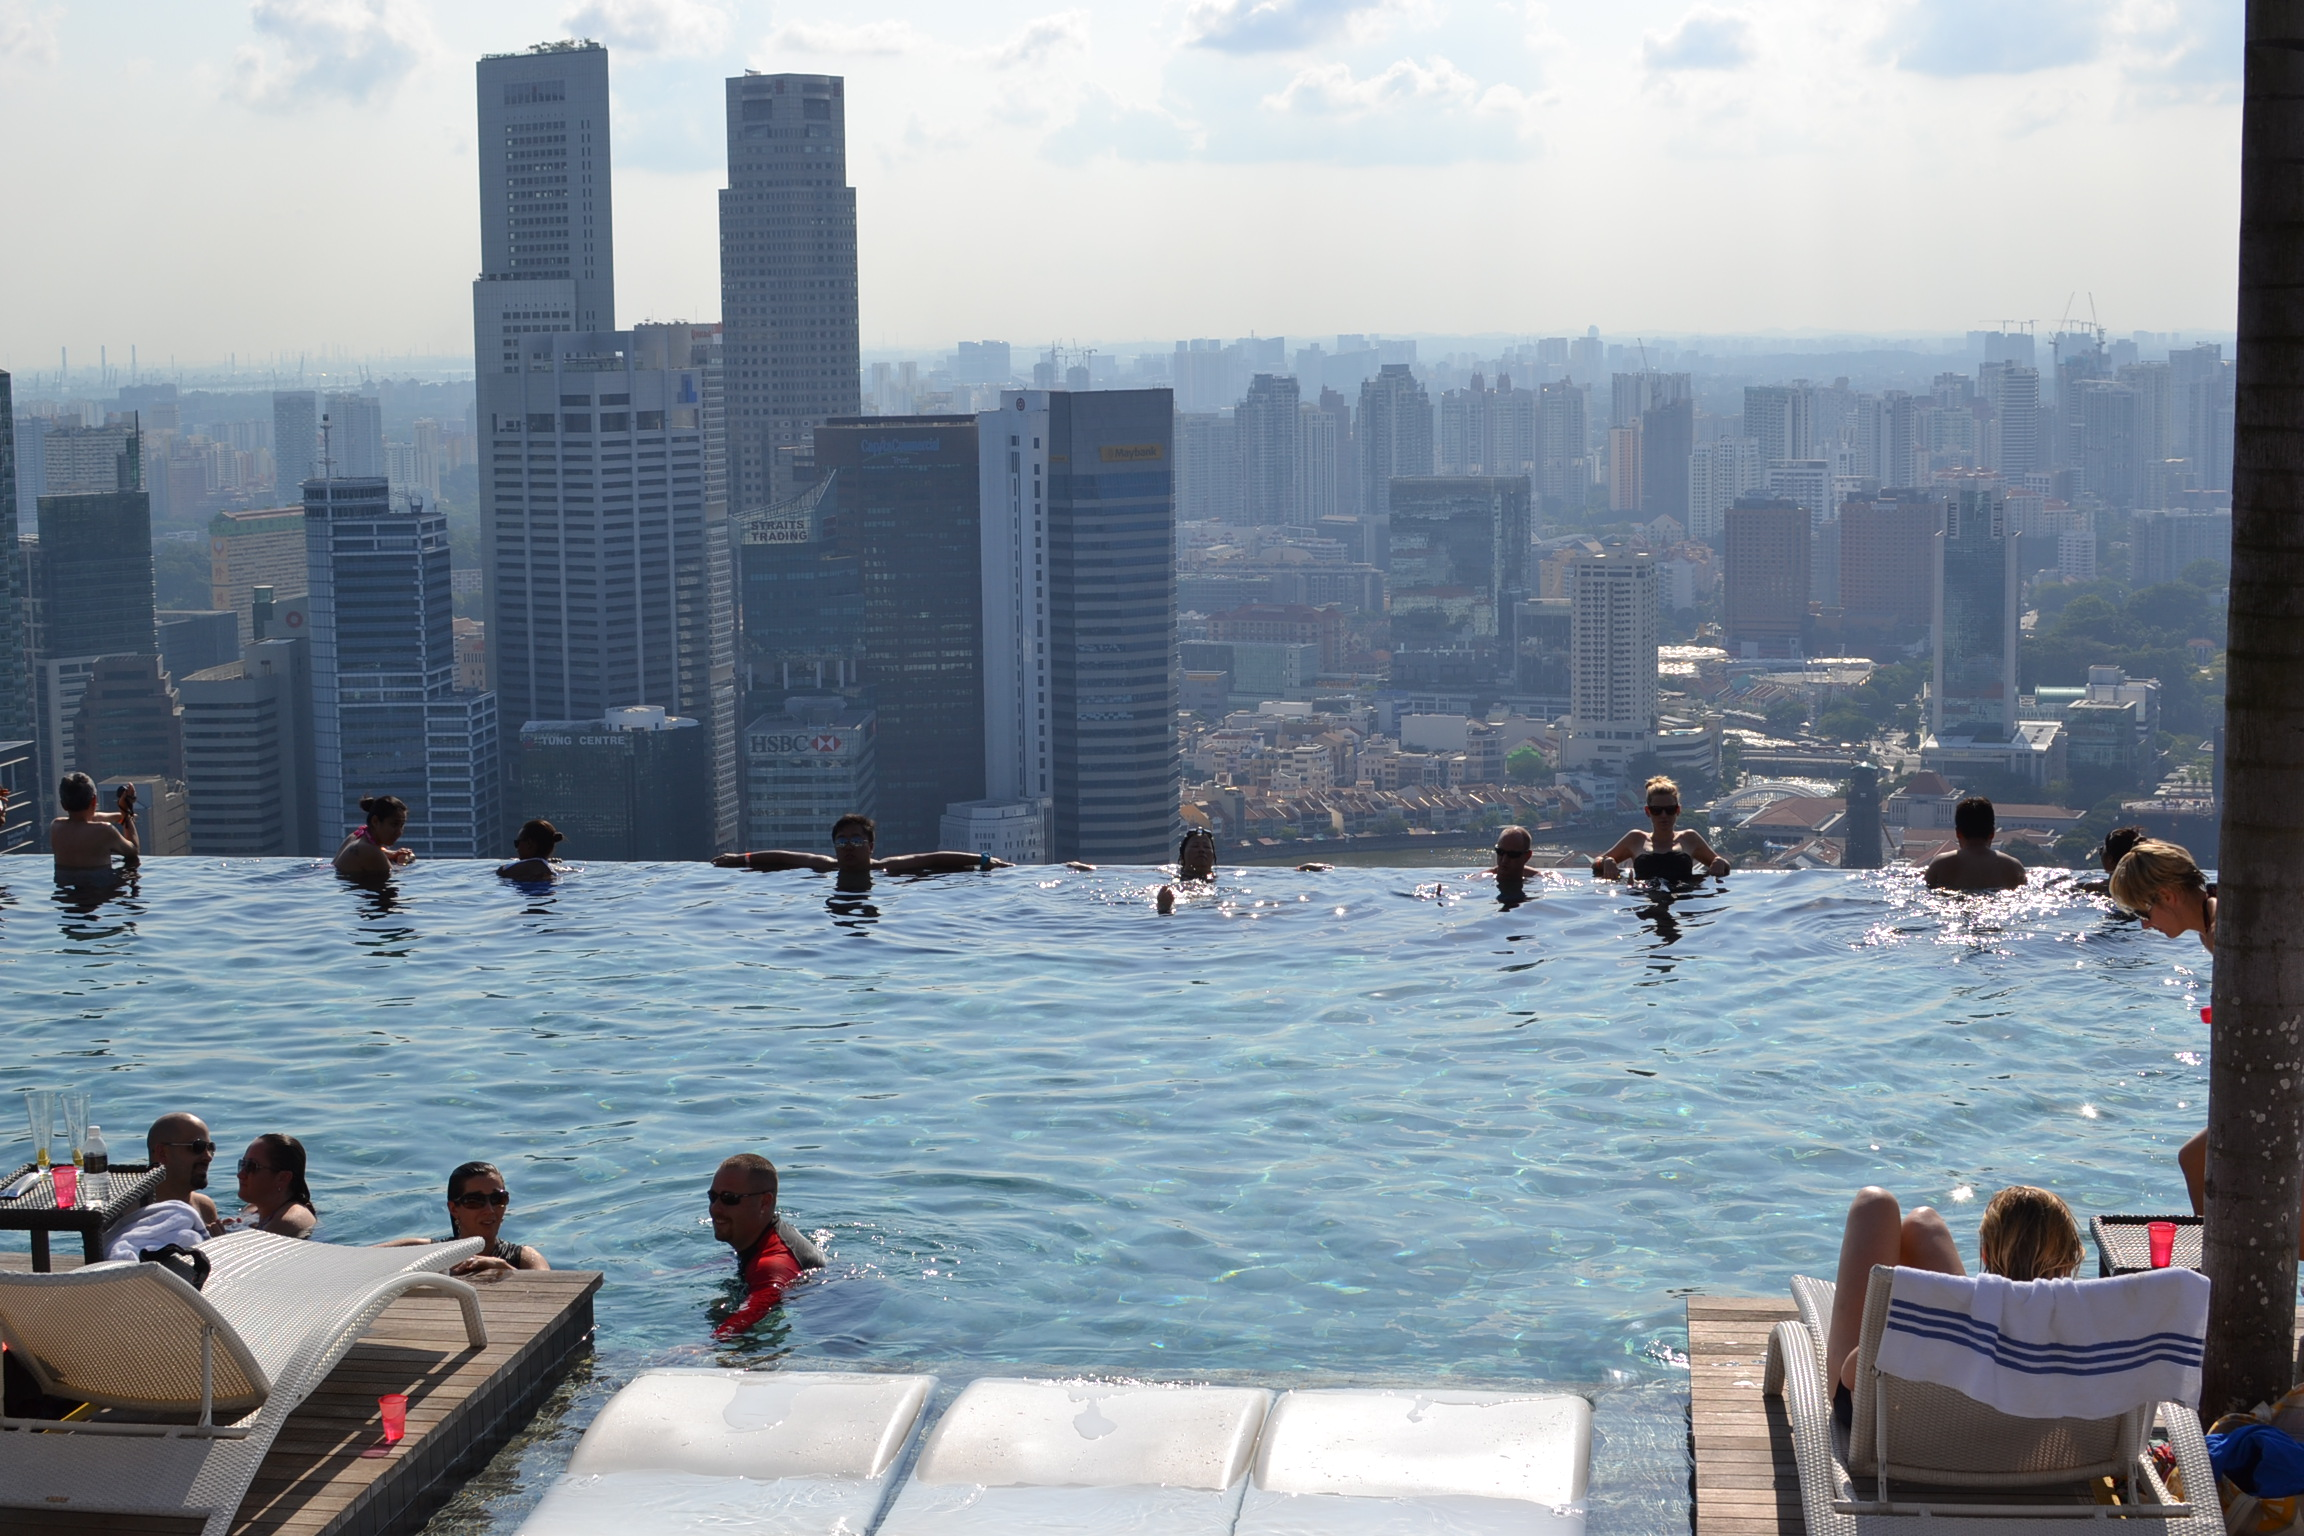 Marina bay sands skypark infinity pool escape with style - Marina bay singapore pool ...